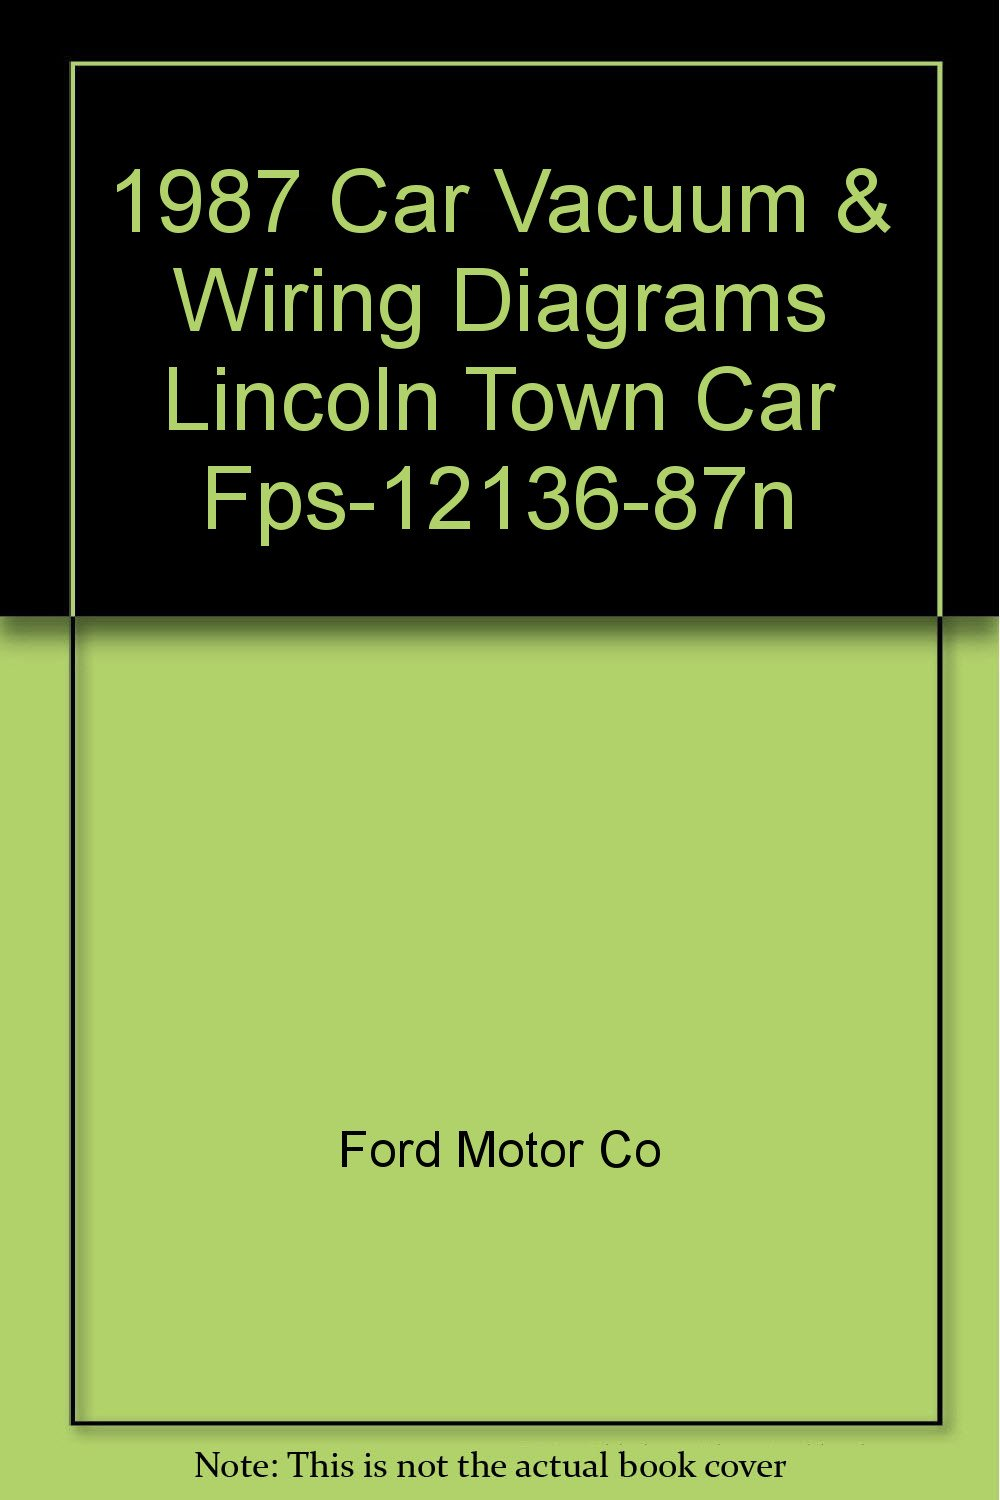 1987 car vacuum & wiring diagrams lincoln town car fps-12136-87n paperback  – 1986